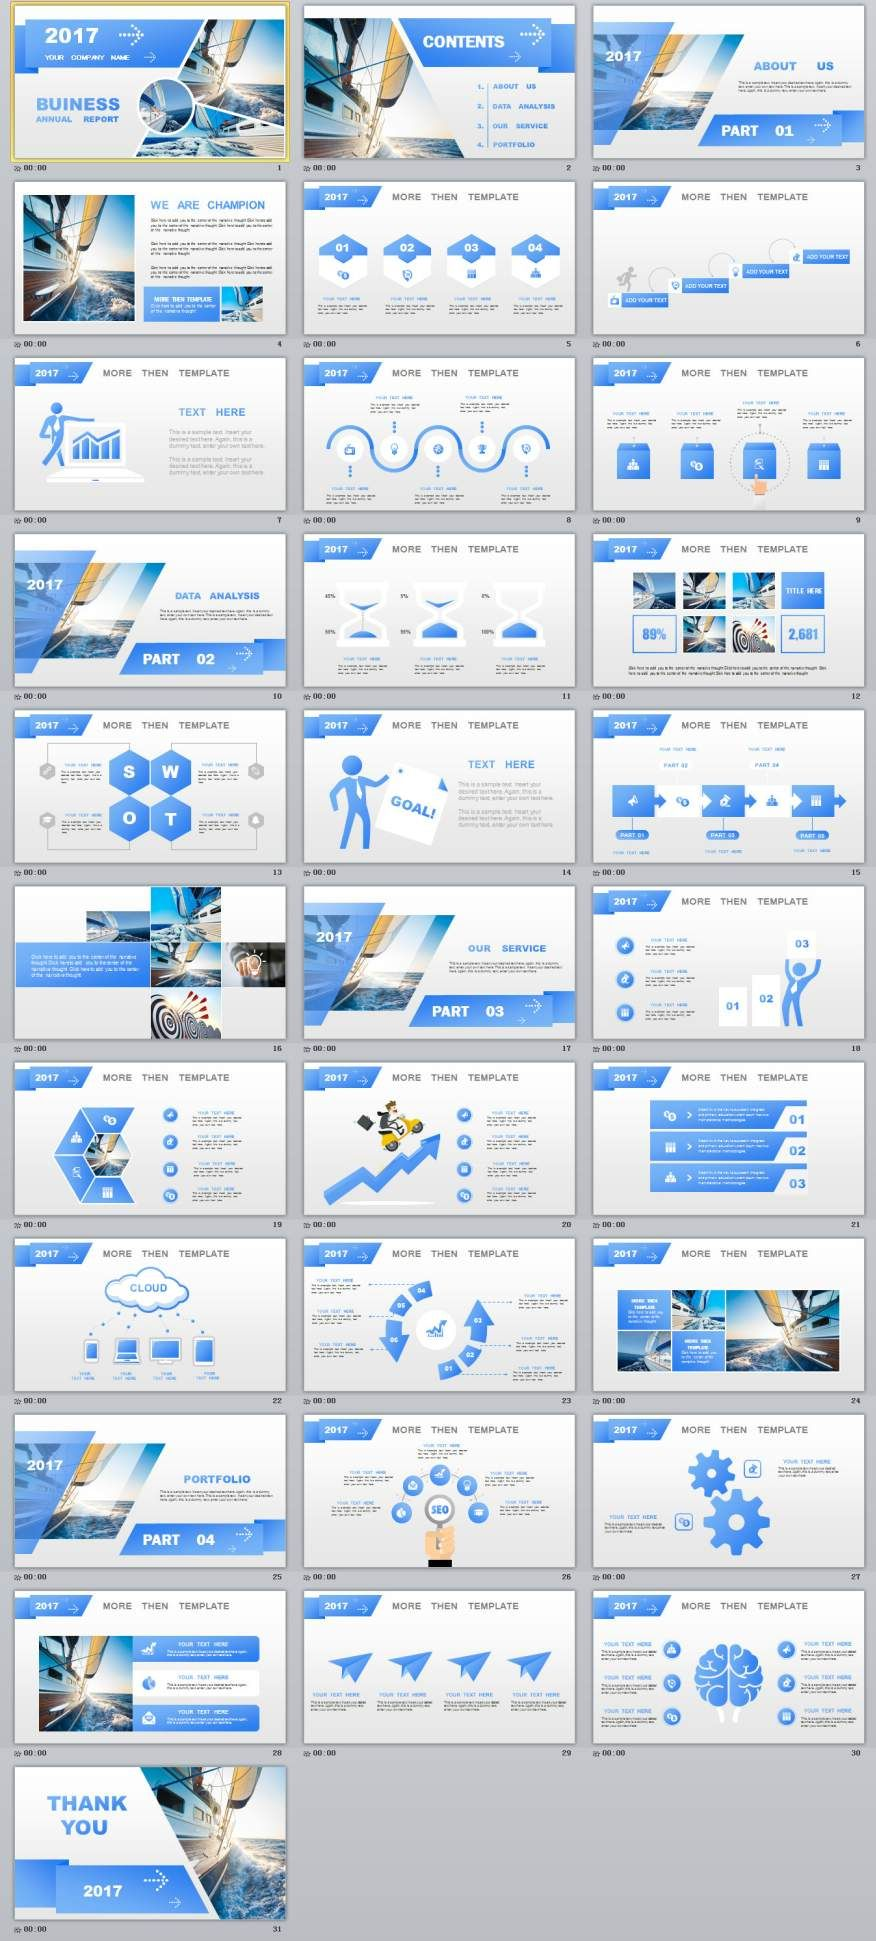 31 Blue Year Report Charts Point Template Templates Presentation Animation Backgrounds Pptwork Annual Business Company